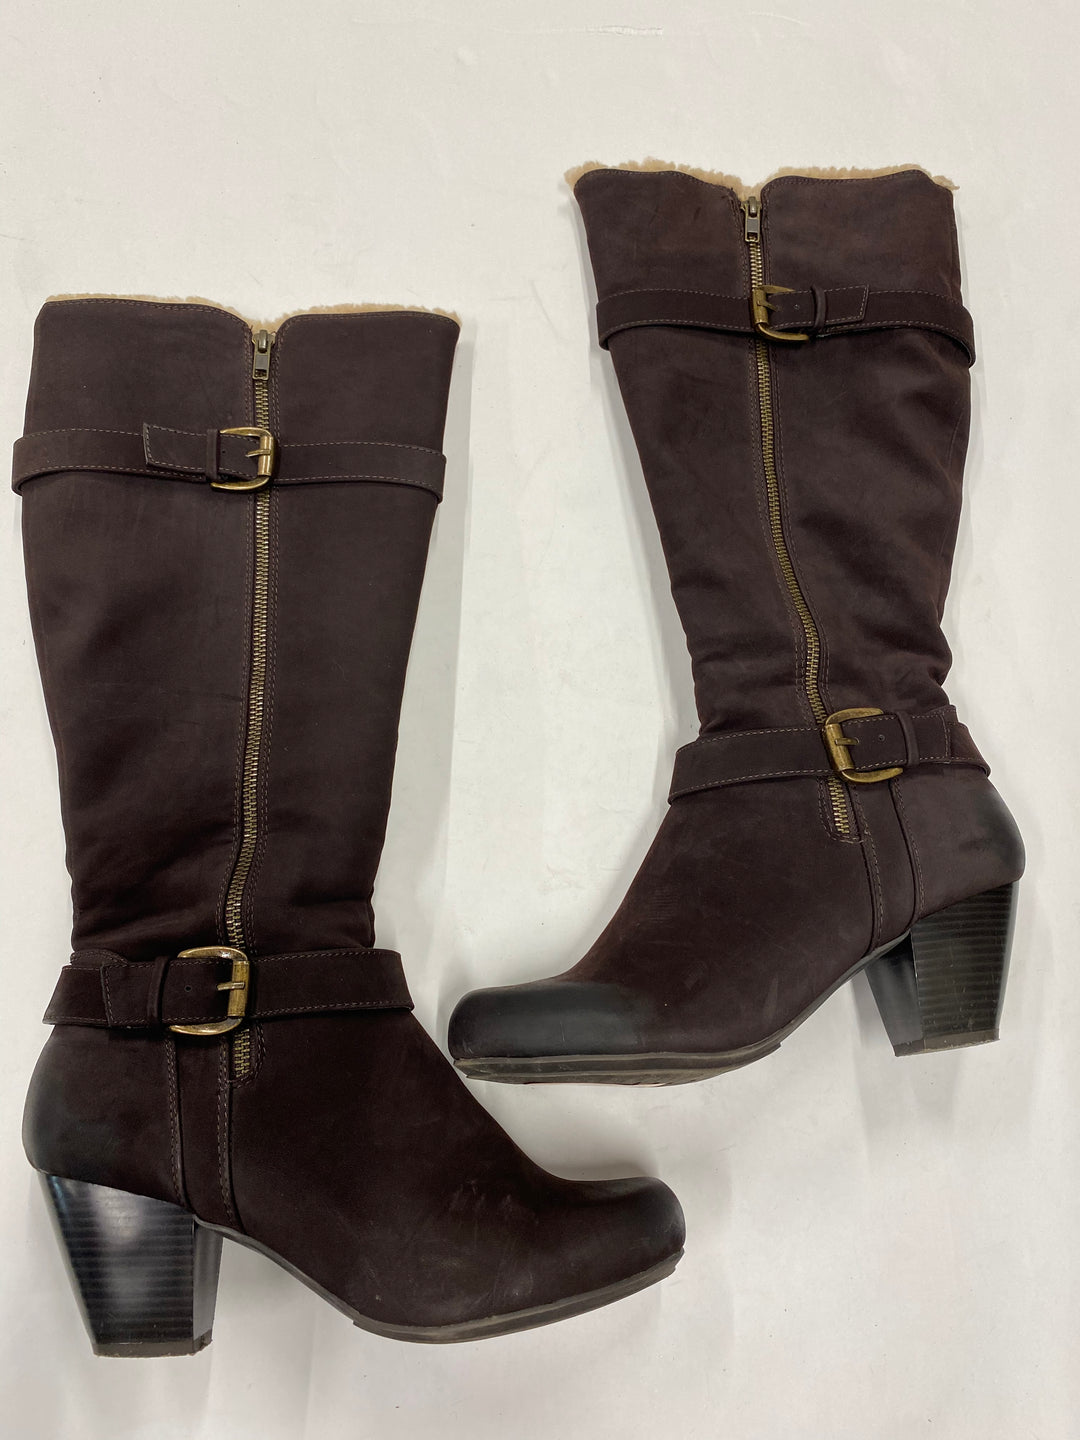 Primary Photo - BRAND: RIALTO <BR>STYLE: BOOTS KNEE <BR>COLOR: BROWN <BR>SIZE: 9 <BR>SKU: 200-200201-319